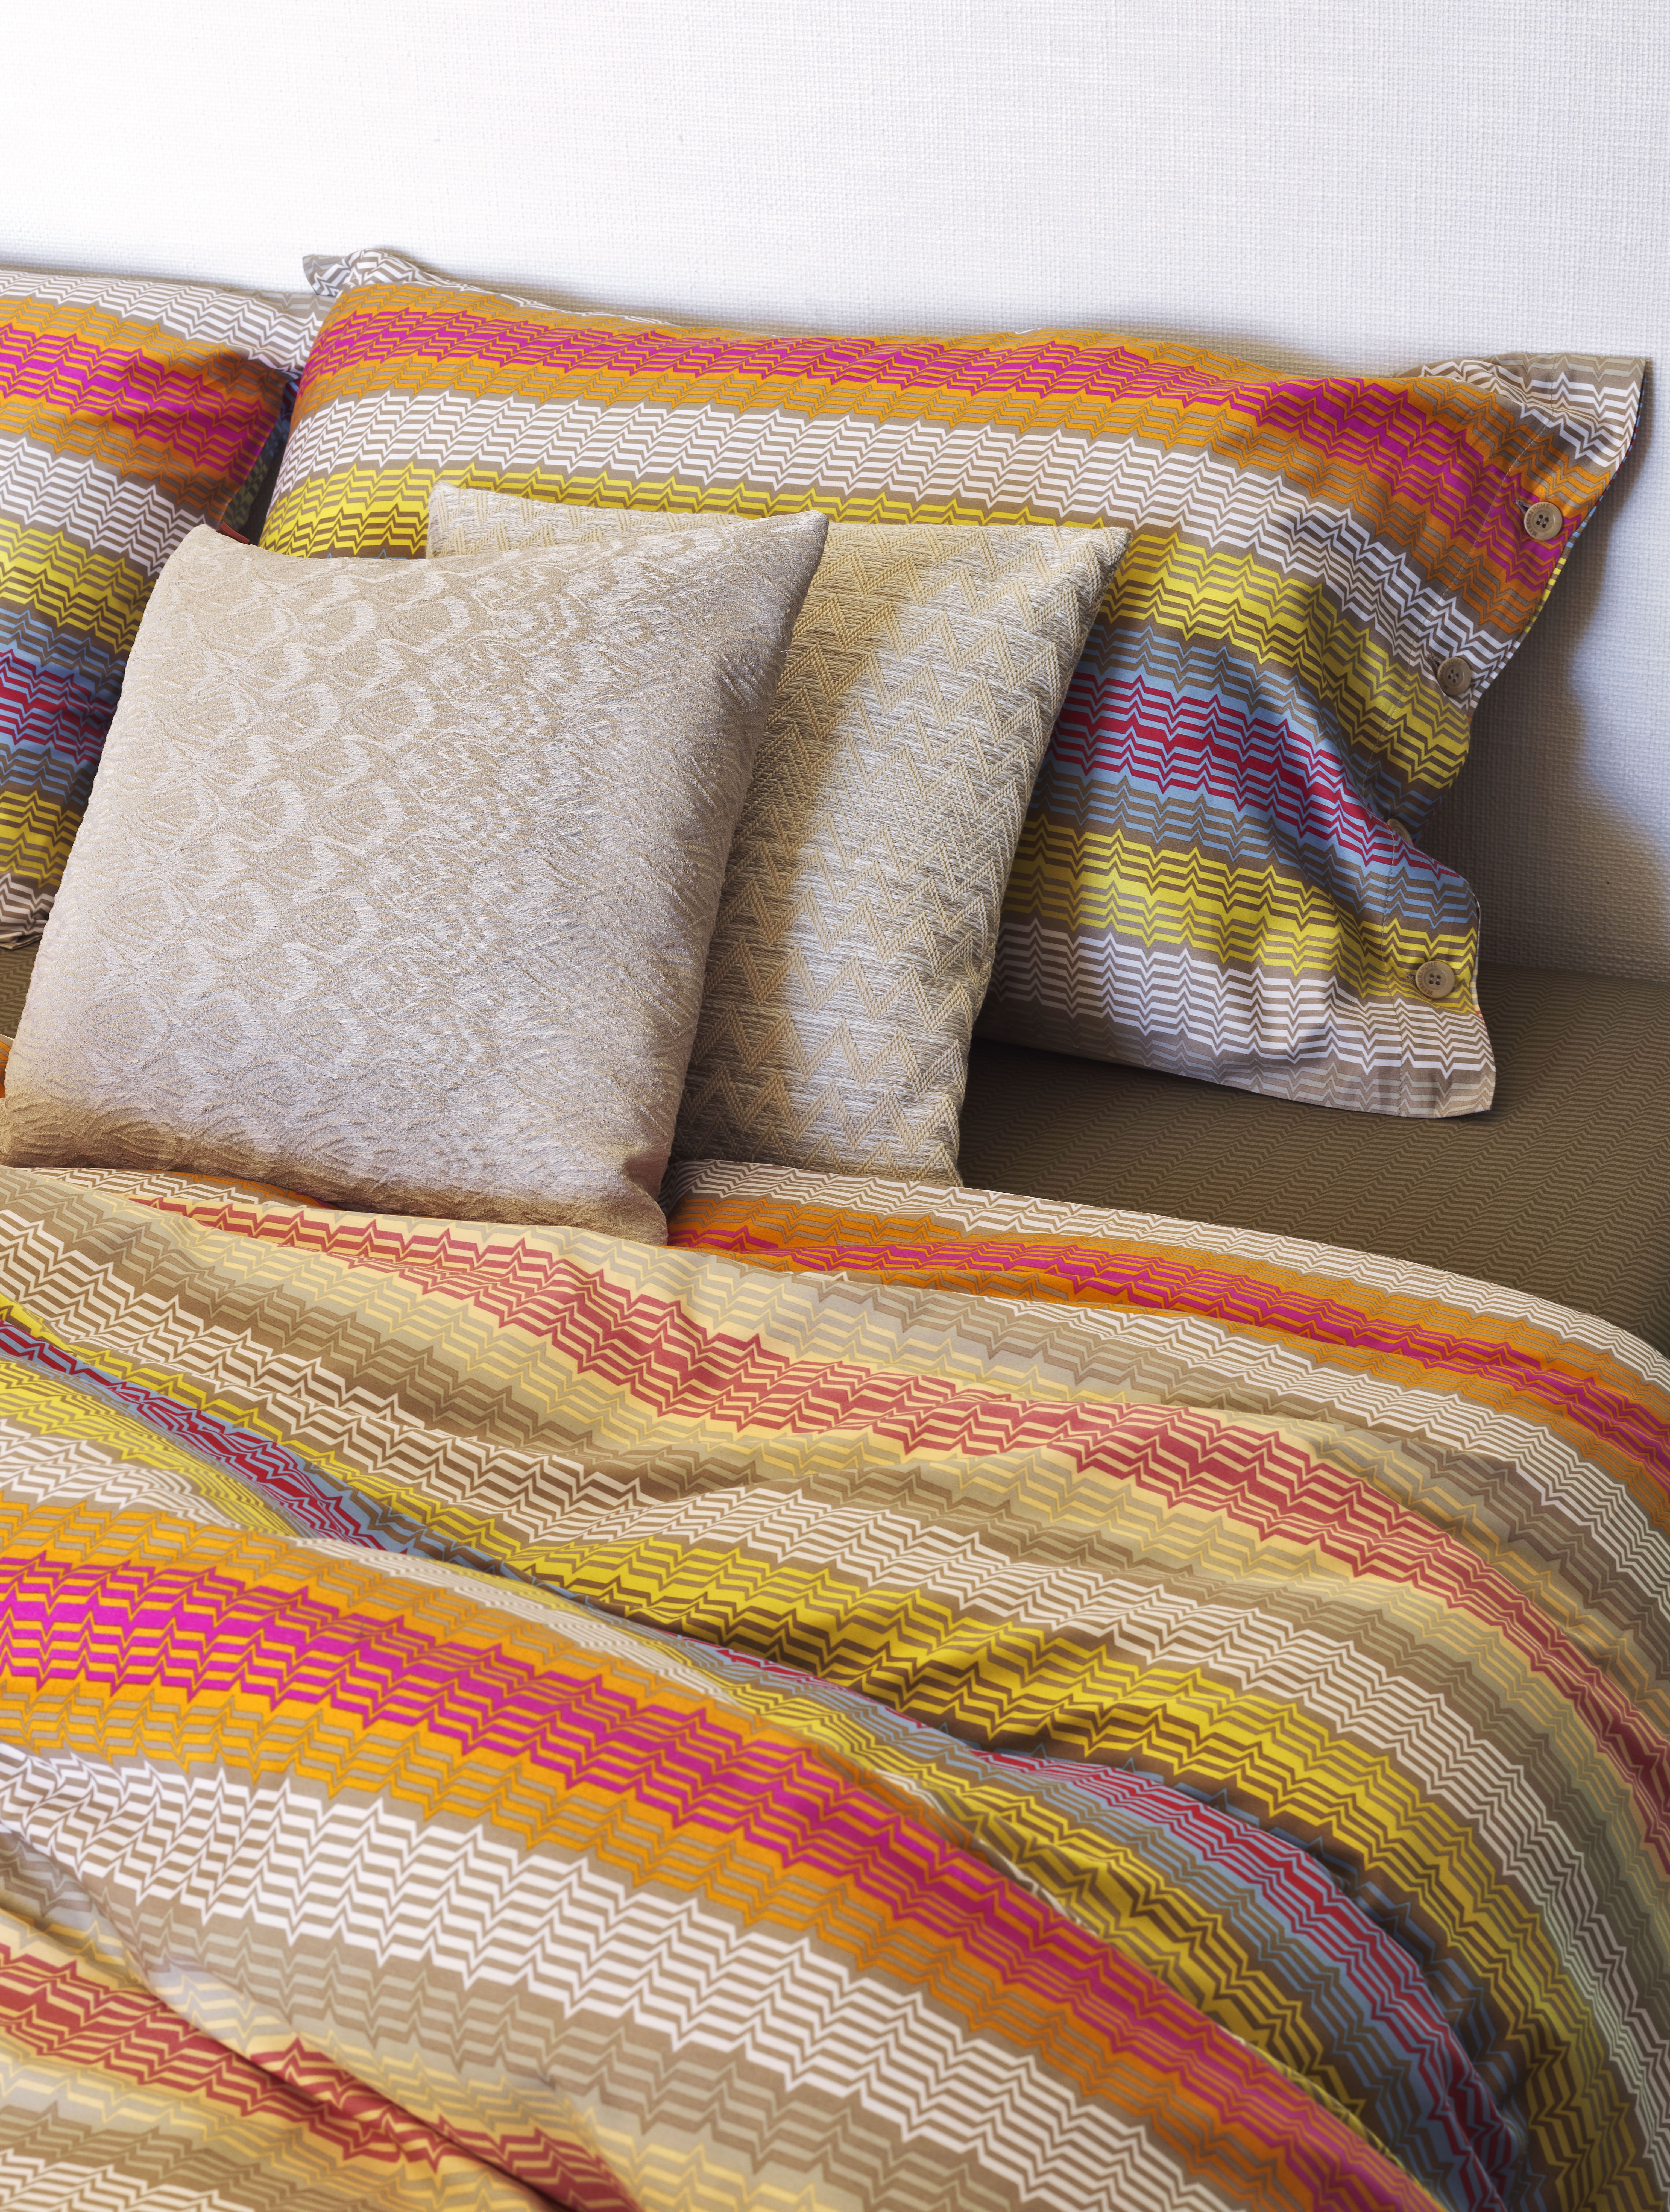 design fabric cool net missoni pillow jong room bedding with affordable roche screen bobois couch sectional relbf home stoccarda mah divider sofa levante online pillows by